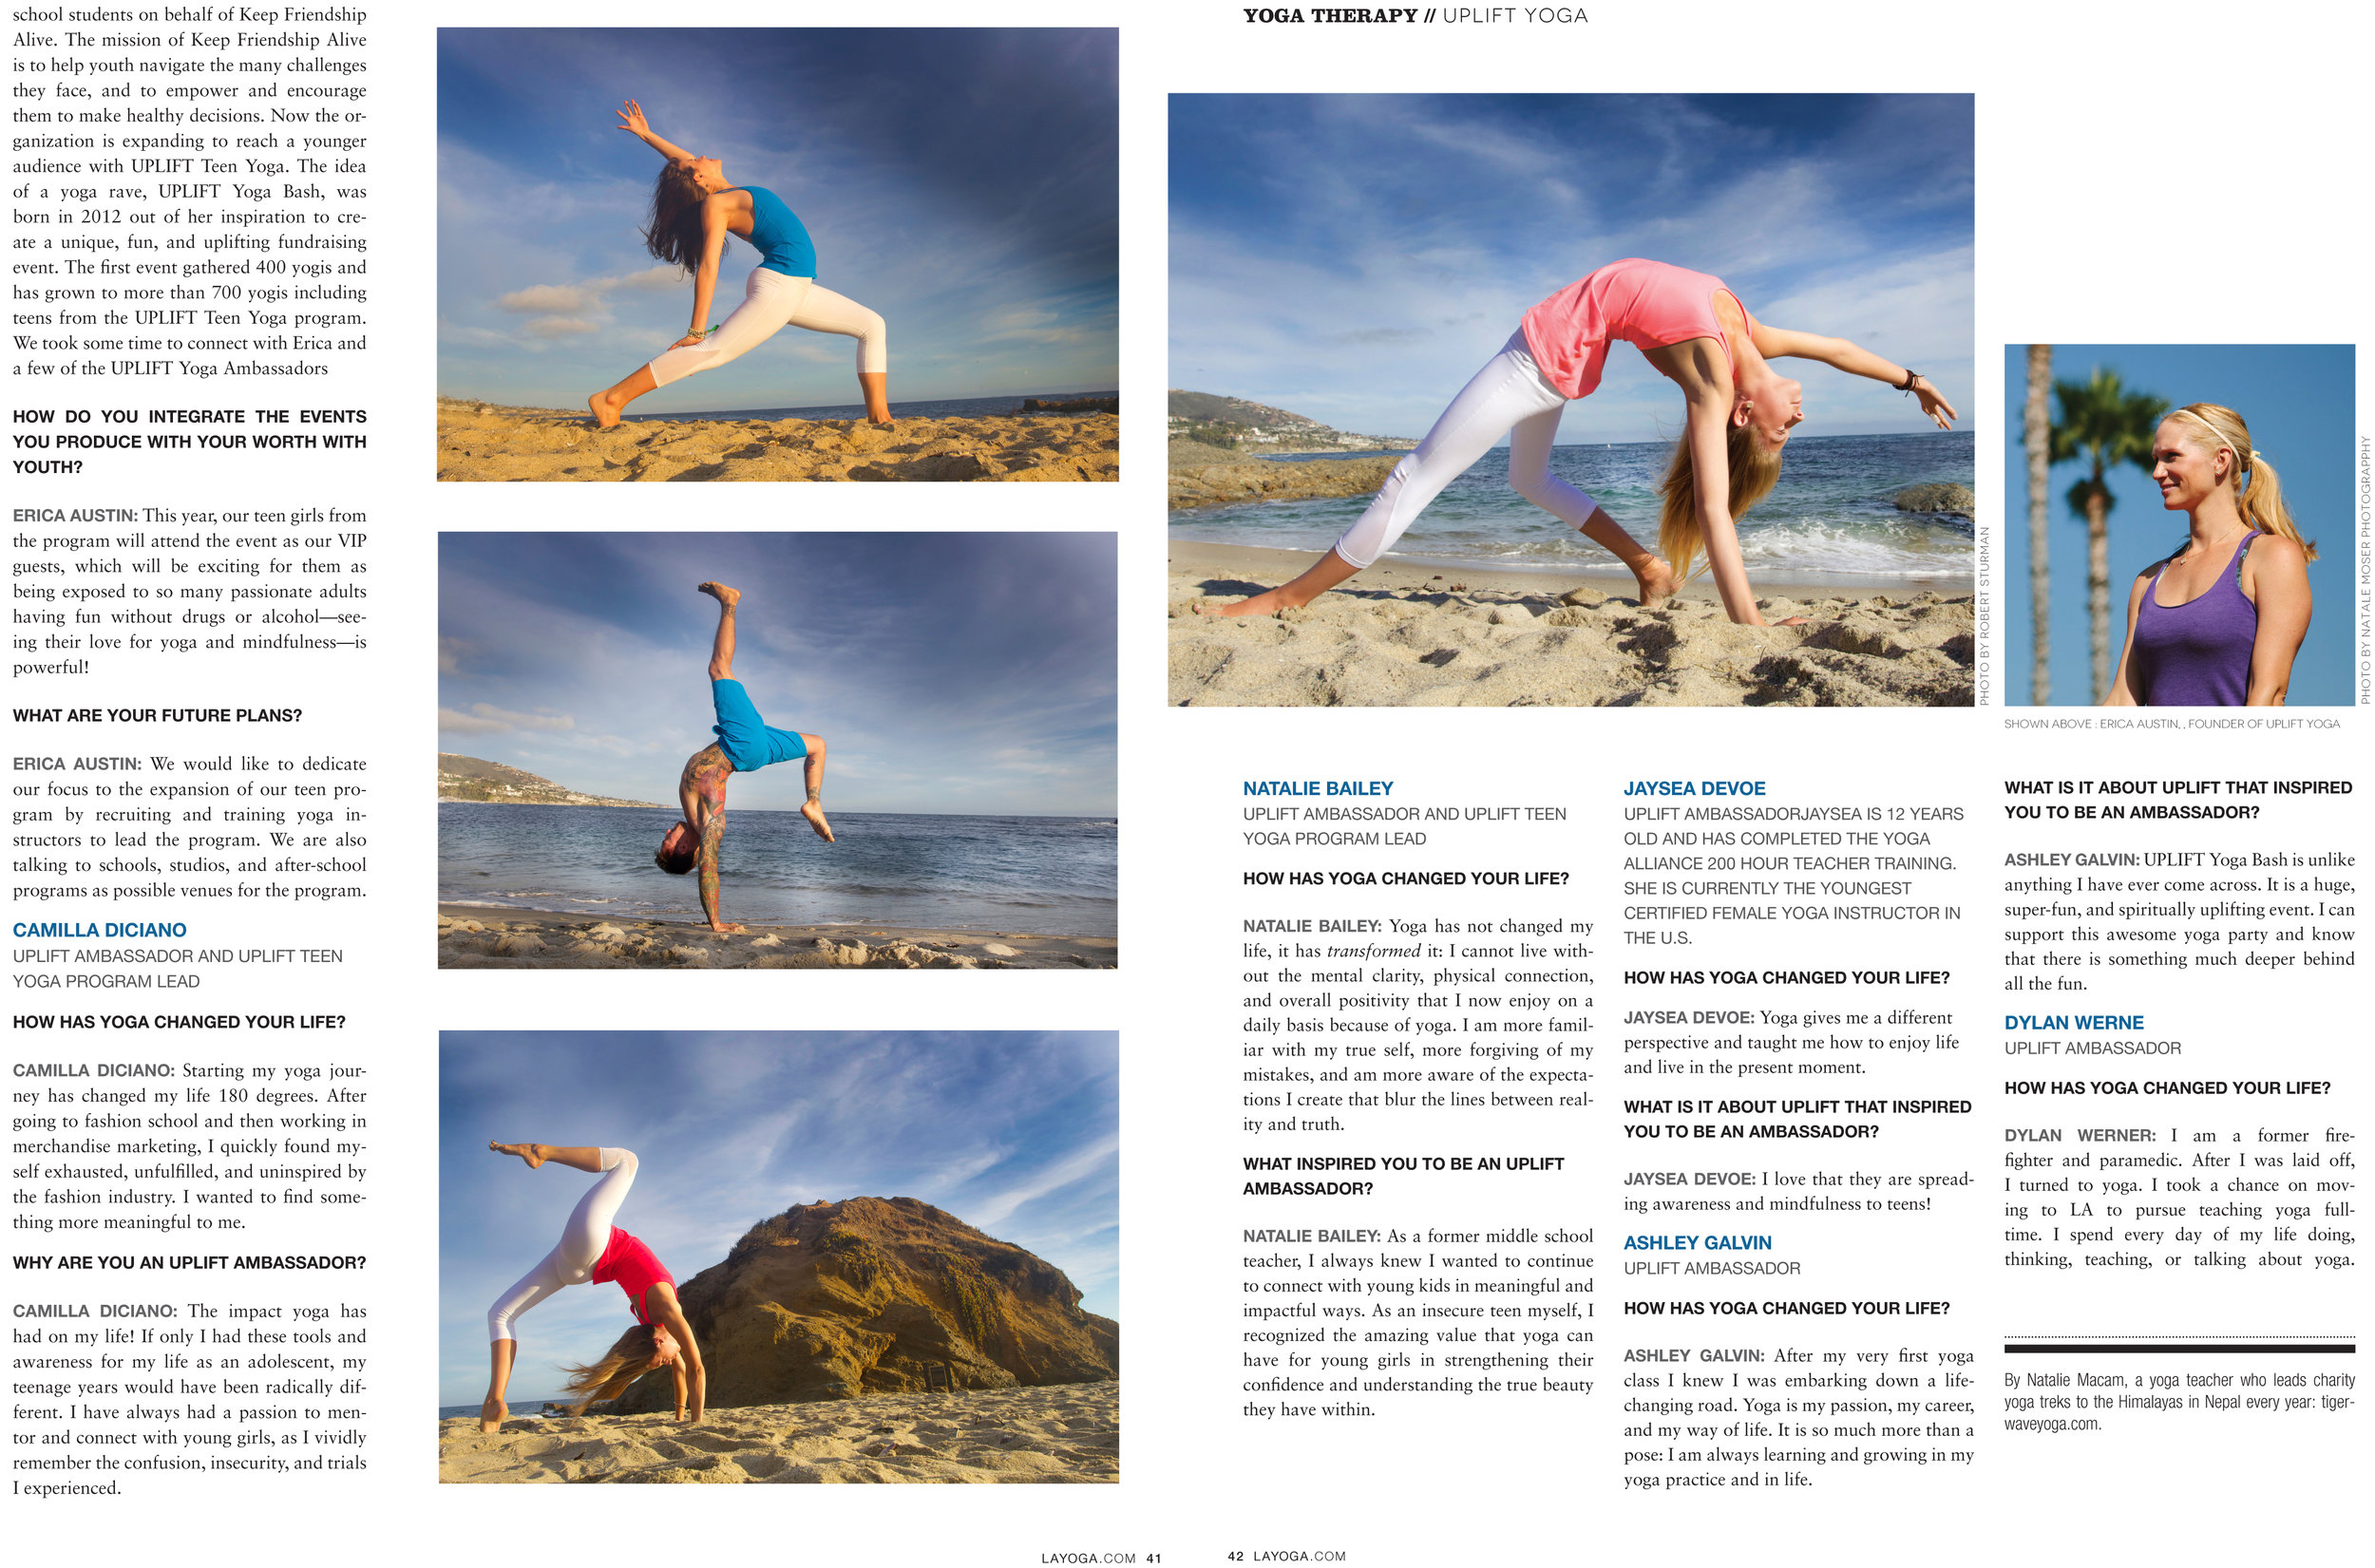 LA Yoga Magazine, September 2014